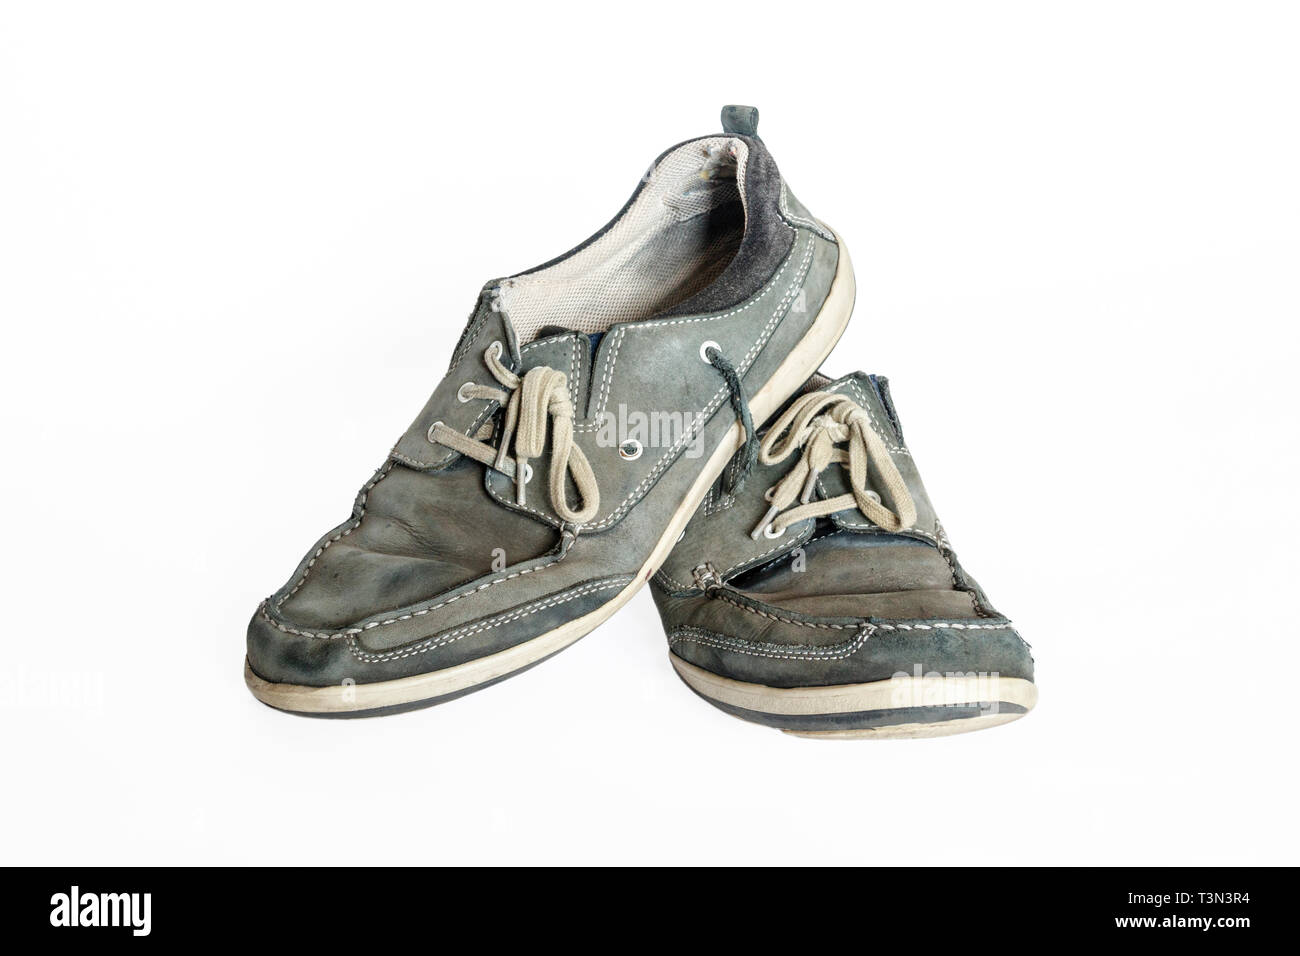 Close-up of pair of old worn-out blue-grey suede leather lace-up shoes isolated against a white background - Stock Image